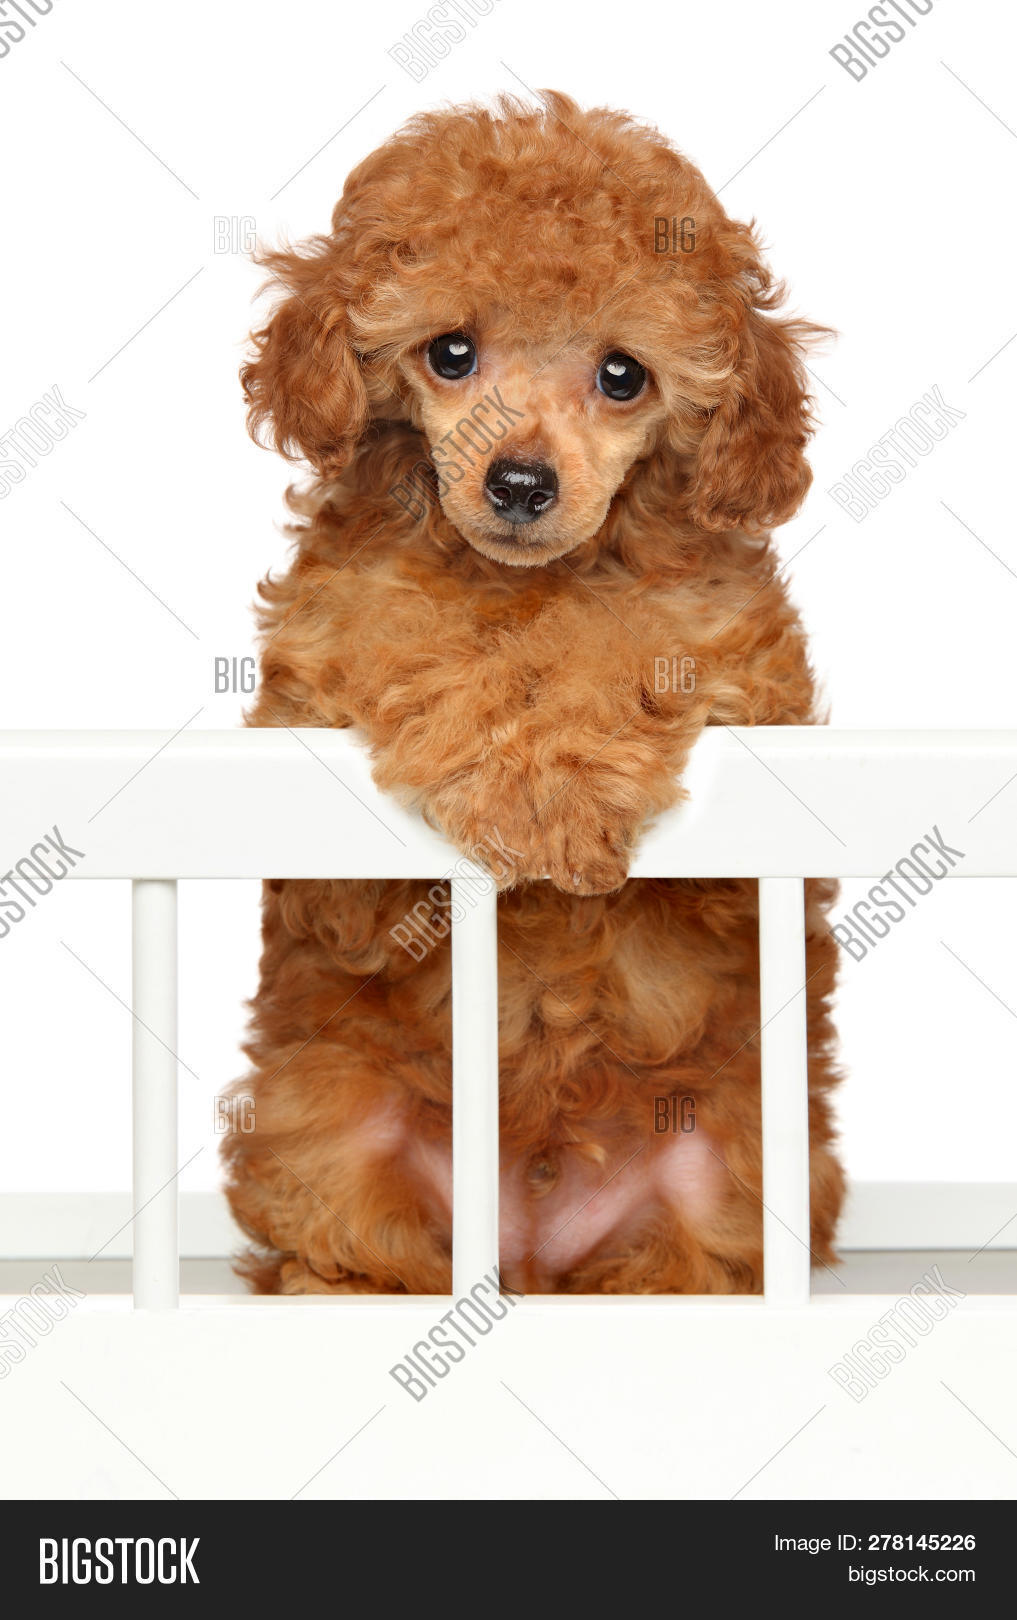 Red Toy Poodle Puppy Image Photo Free Trial Bigstock